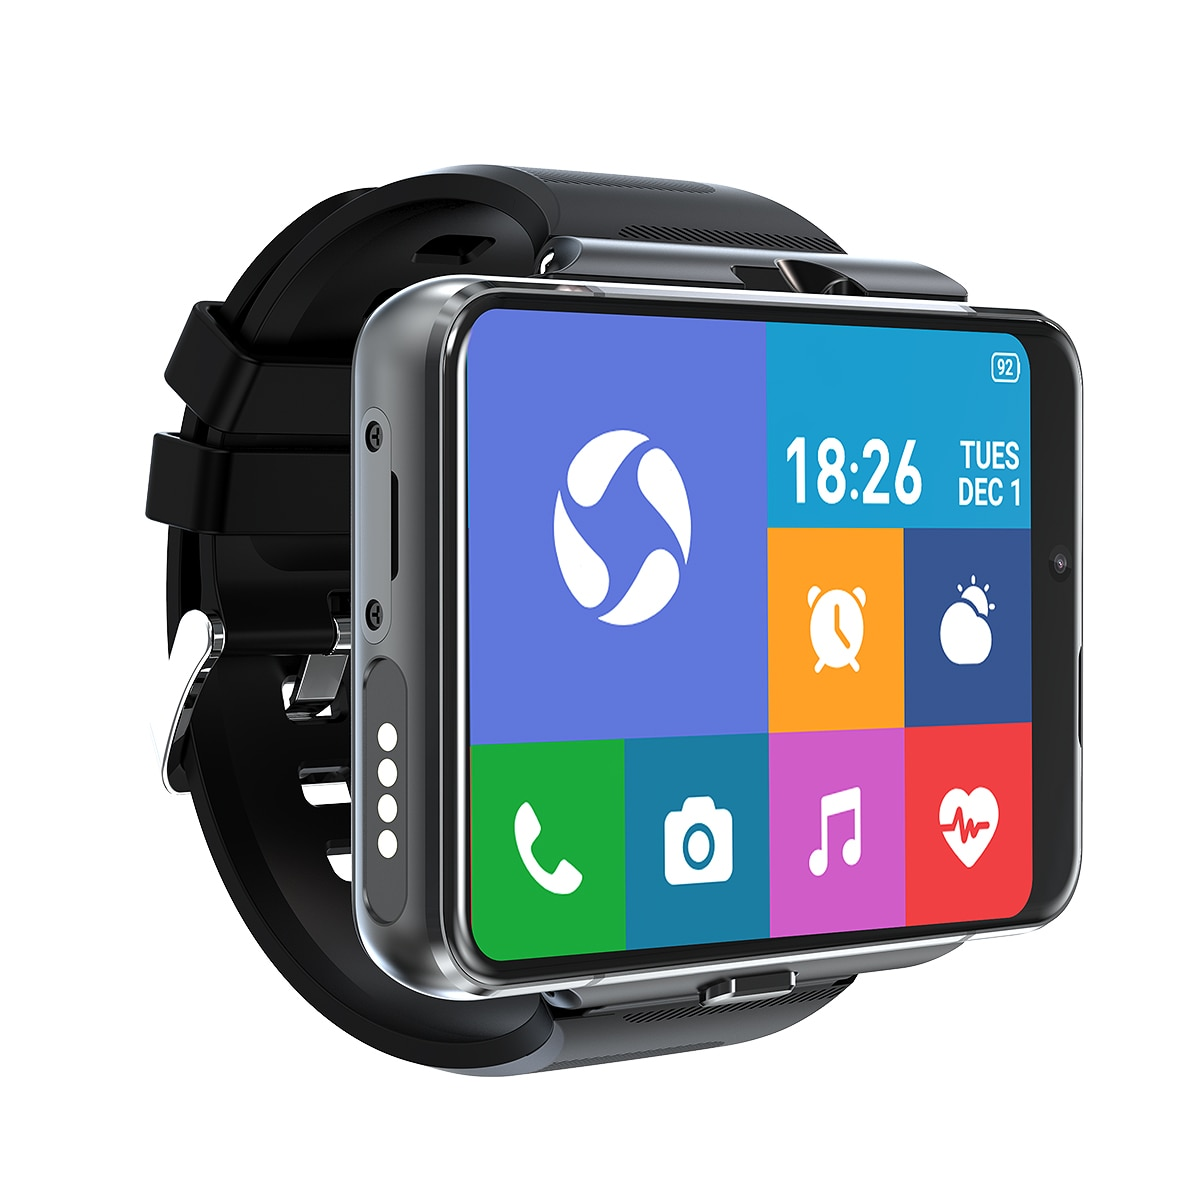 Promo S999 4G Smart Watch Android 9.0 MTK6761 Quad Core 4GB/64GB Smart Watch Heart Rate Tracker GPS Location Relogio Wifi Smartwatch